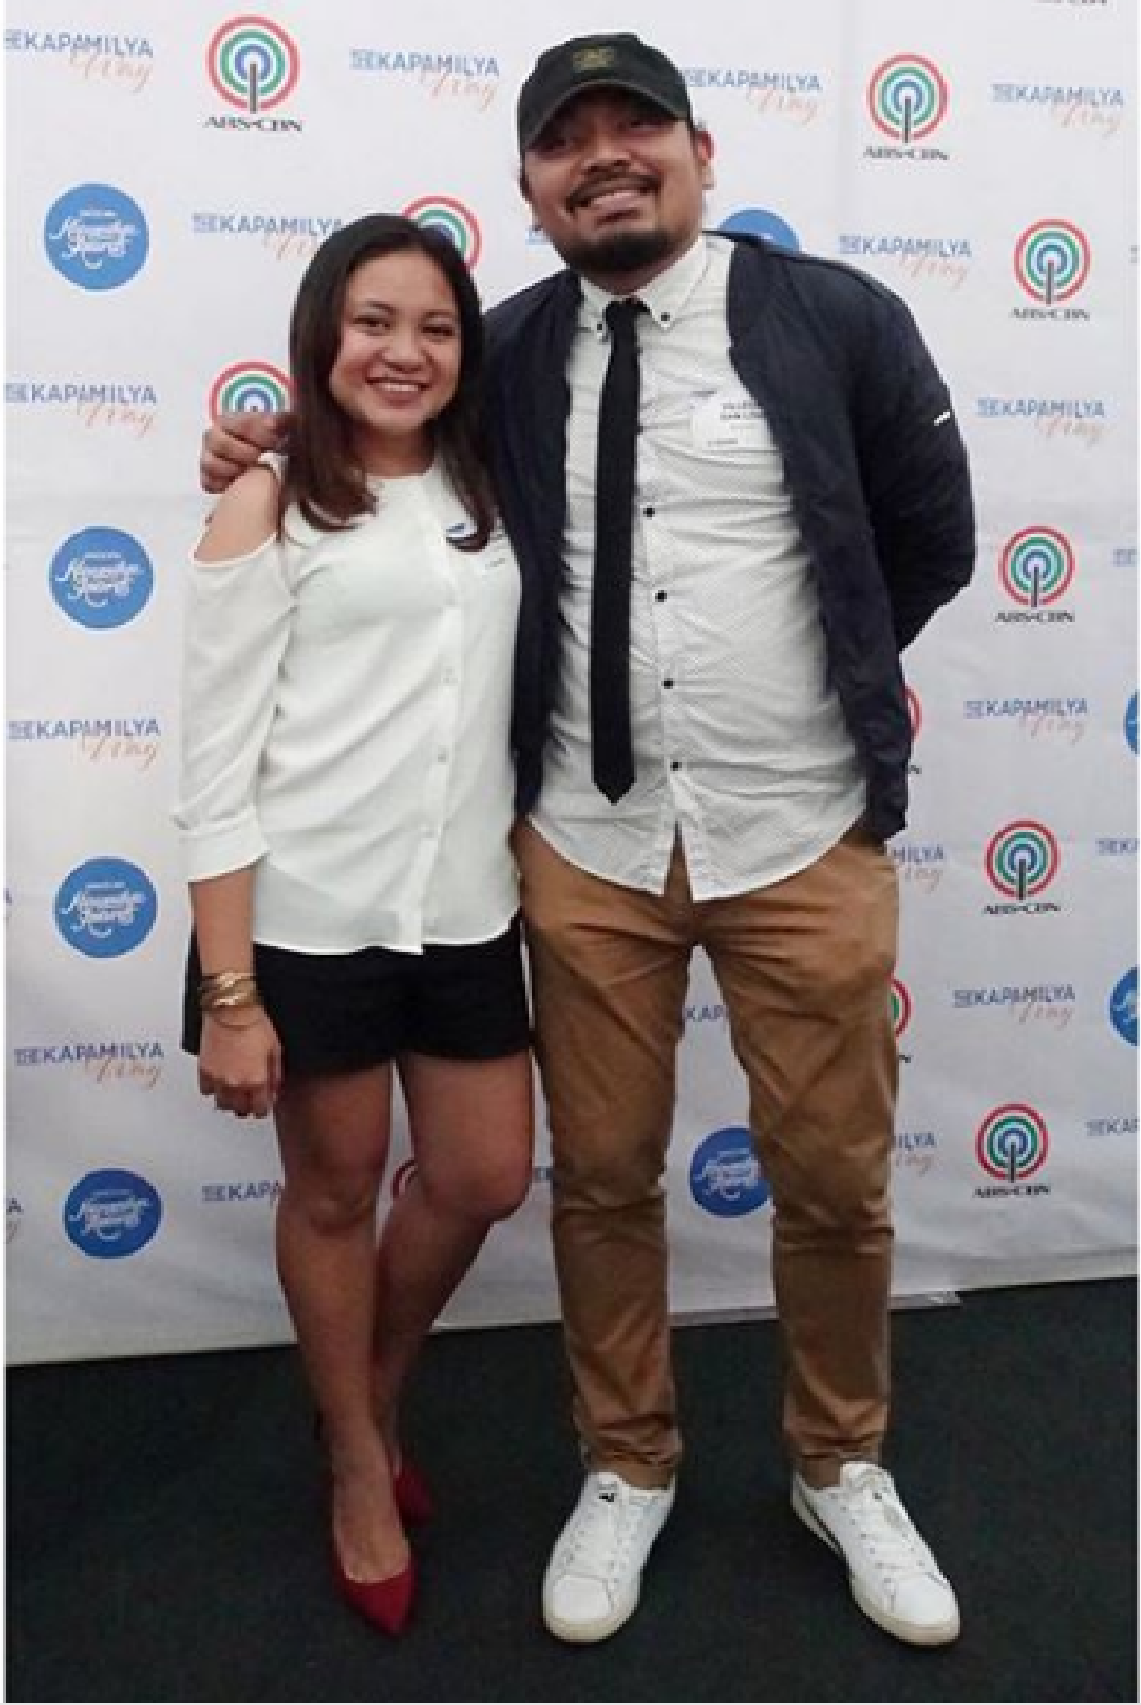 Award-winning Filipino director Dan Villegas and director Antoinette Jadaone (Photo: dan_villegas/Instagram)